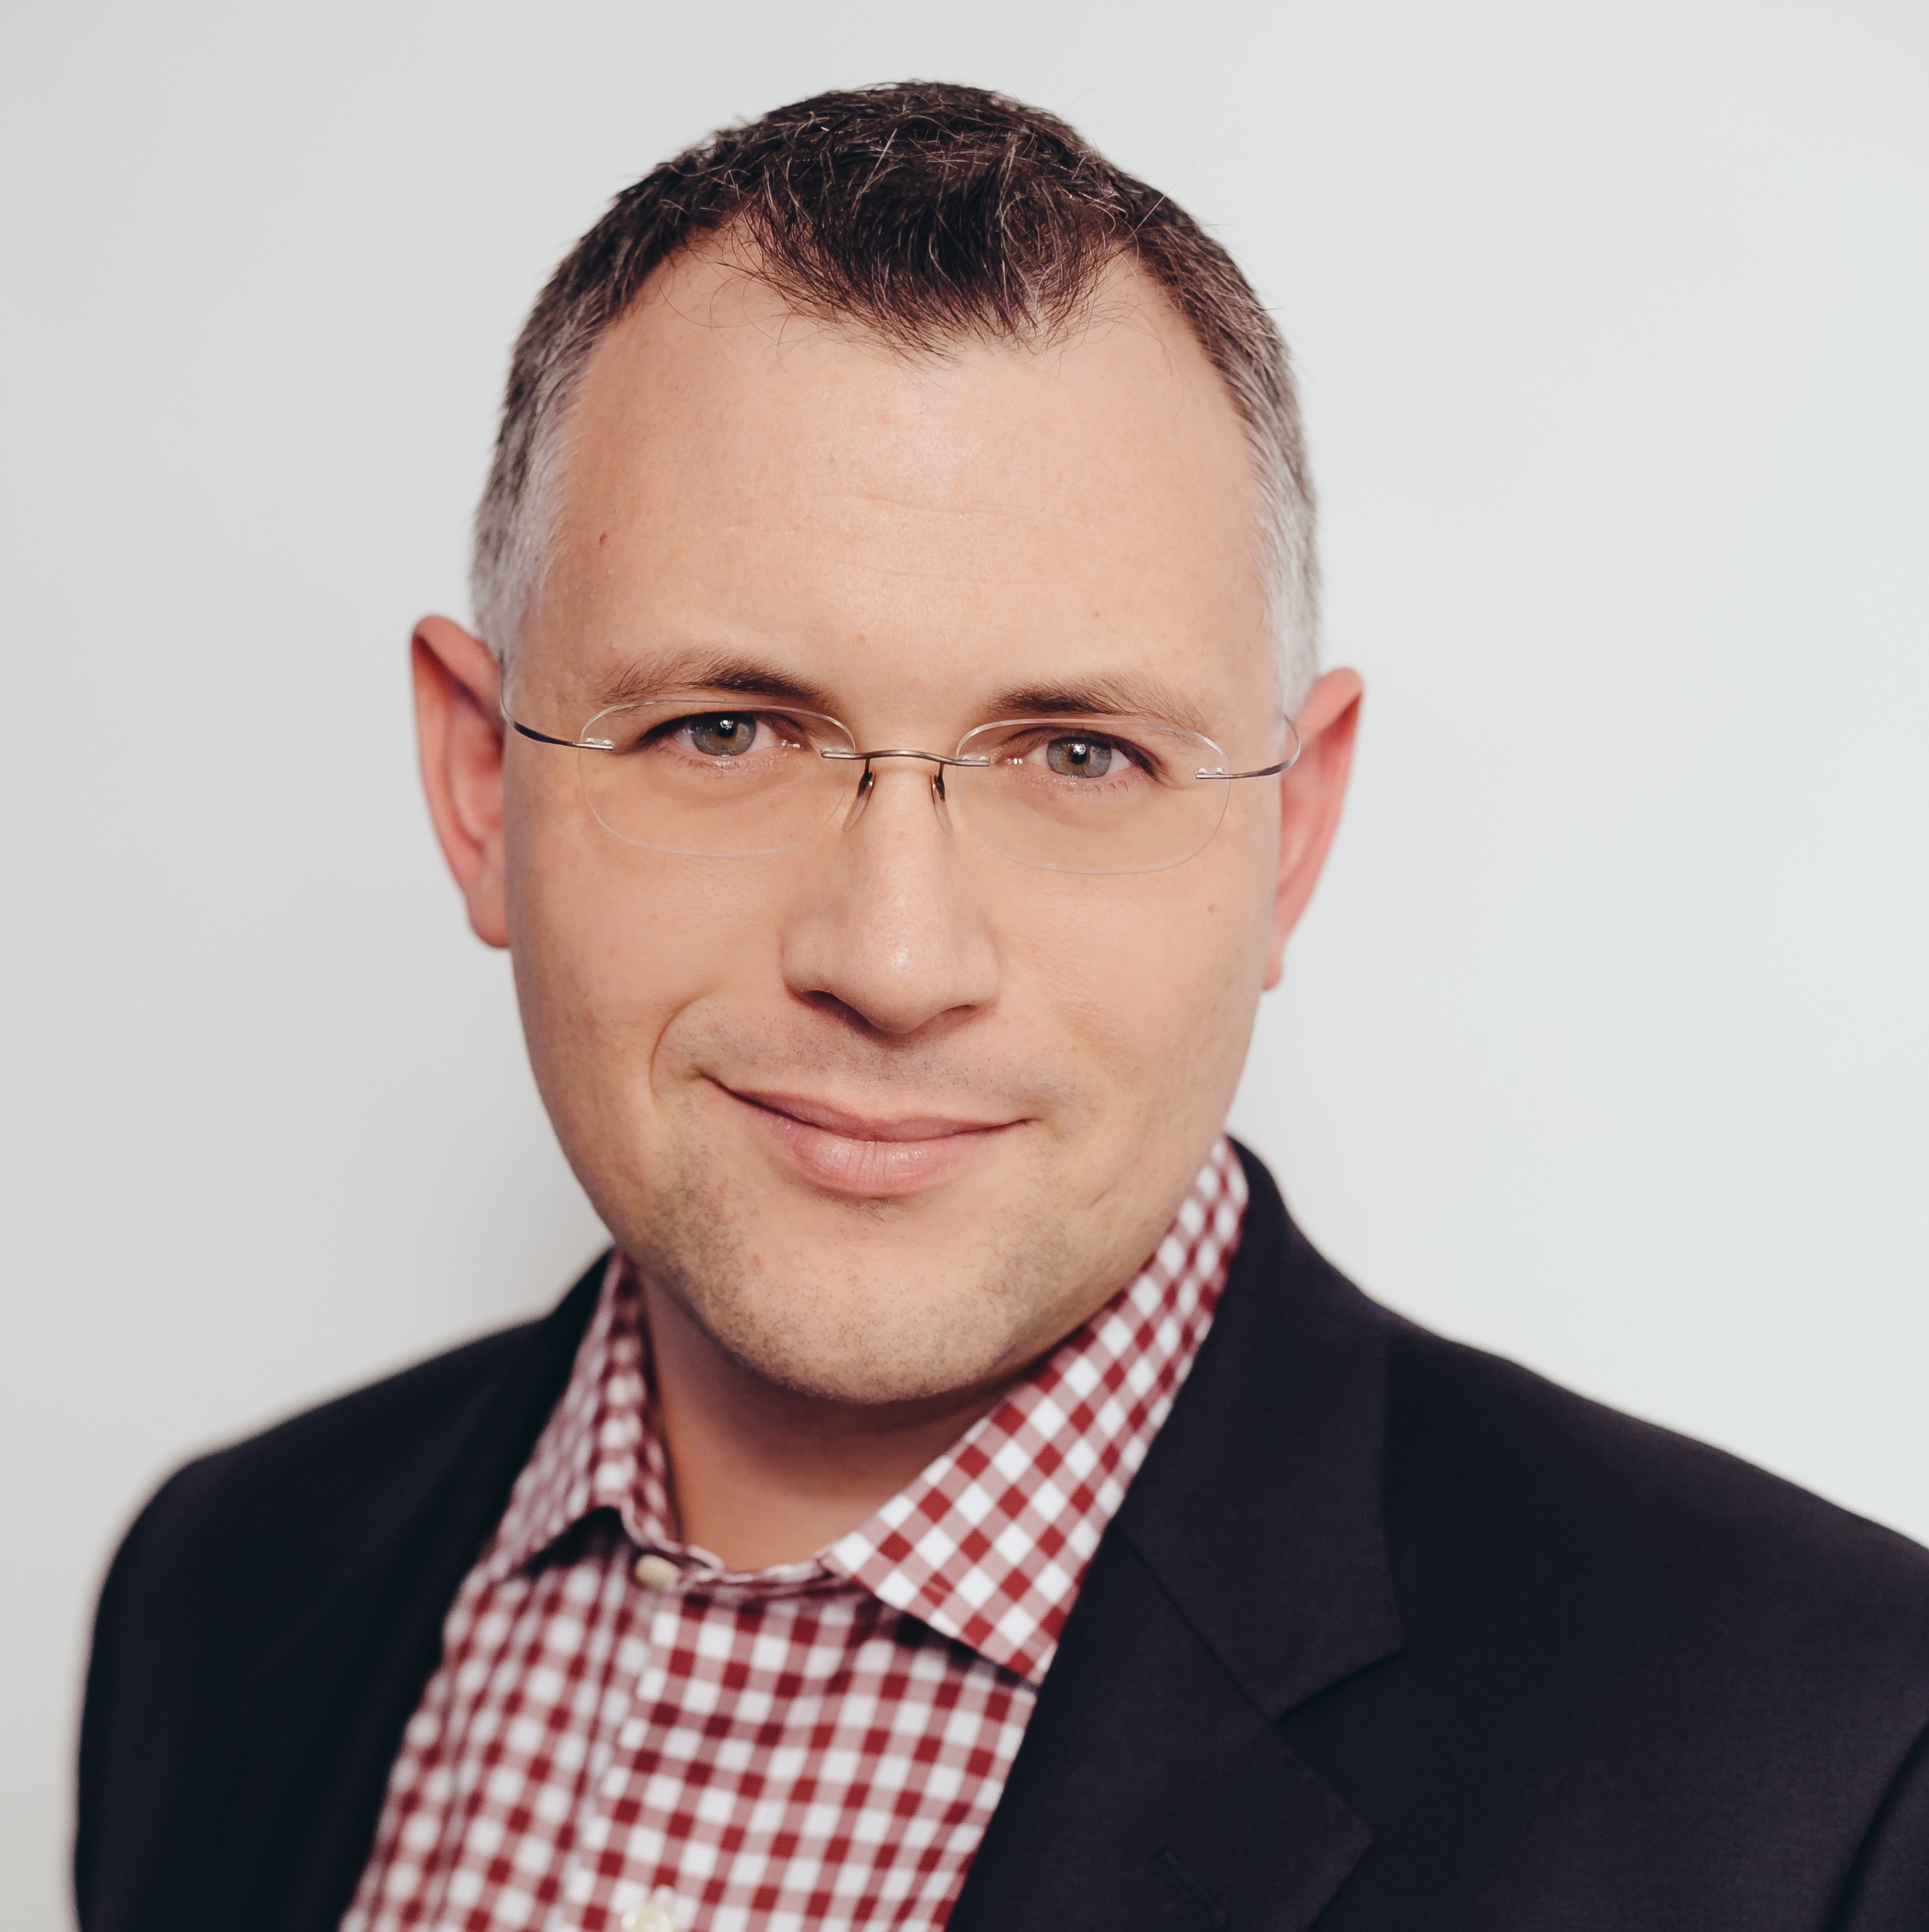 Peter Thomson, marketing director of SeedInvest